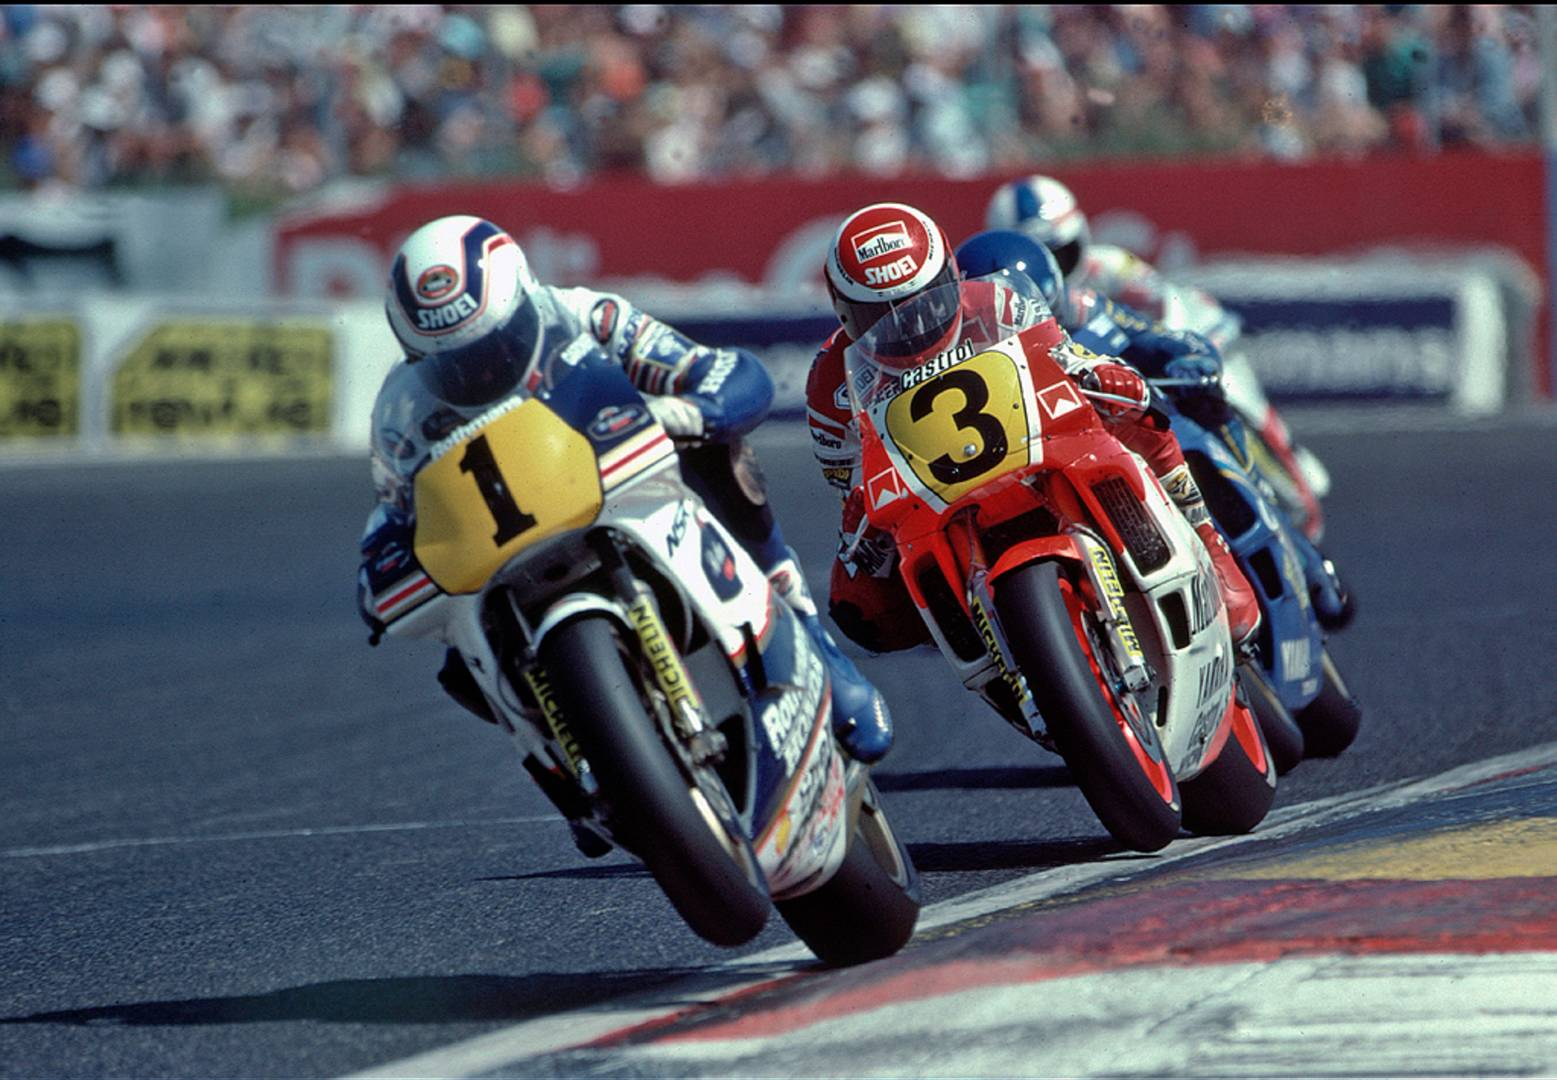 Wayne Gardner leads Eddie Lawson and the pack in the 1987 French Grand Prix (©Don Morley)